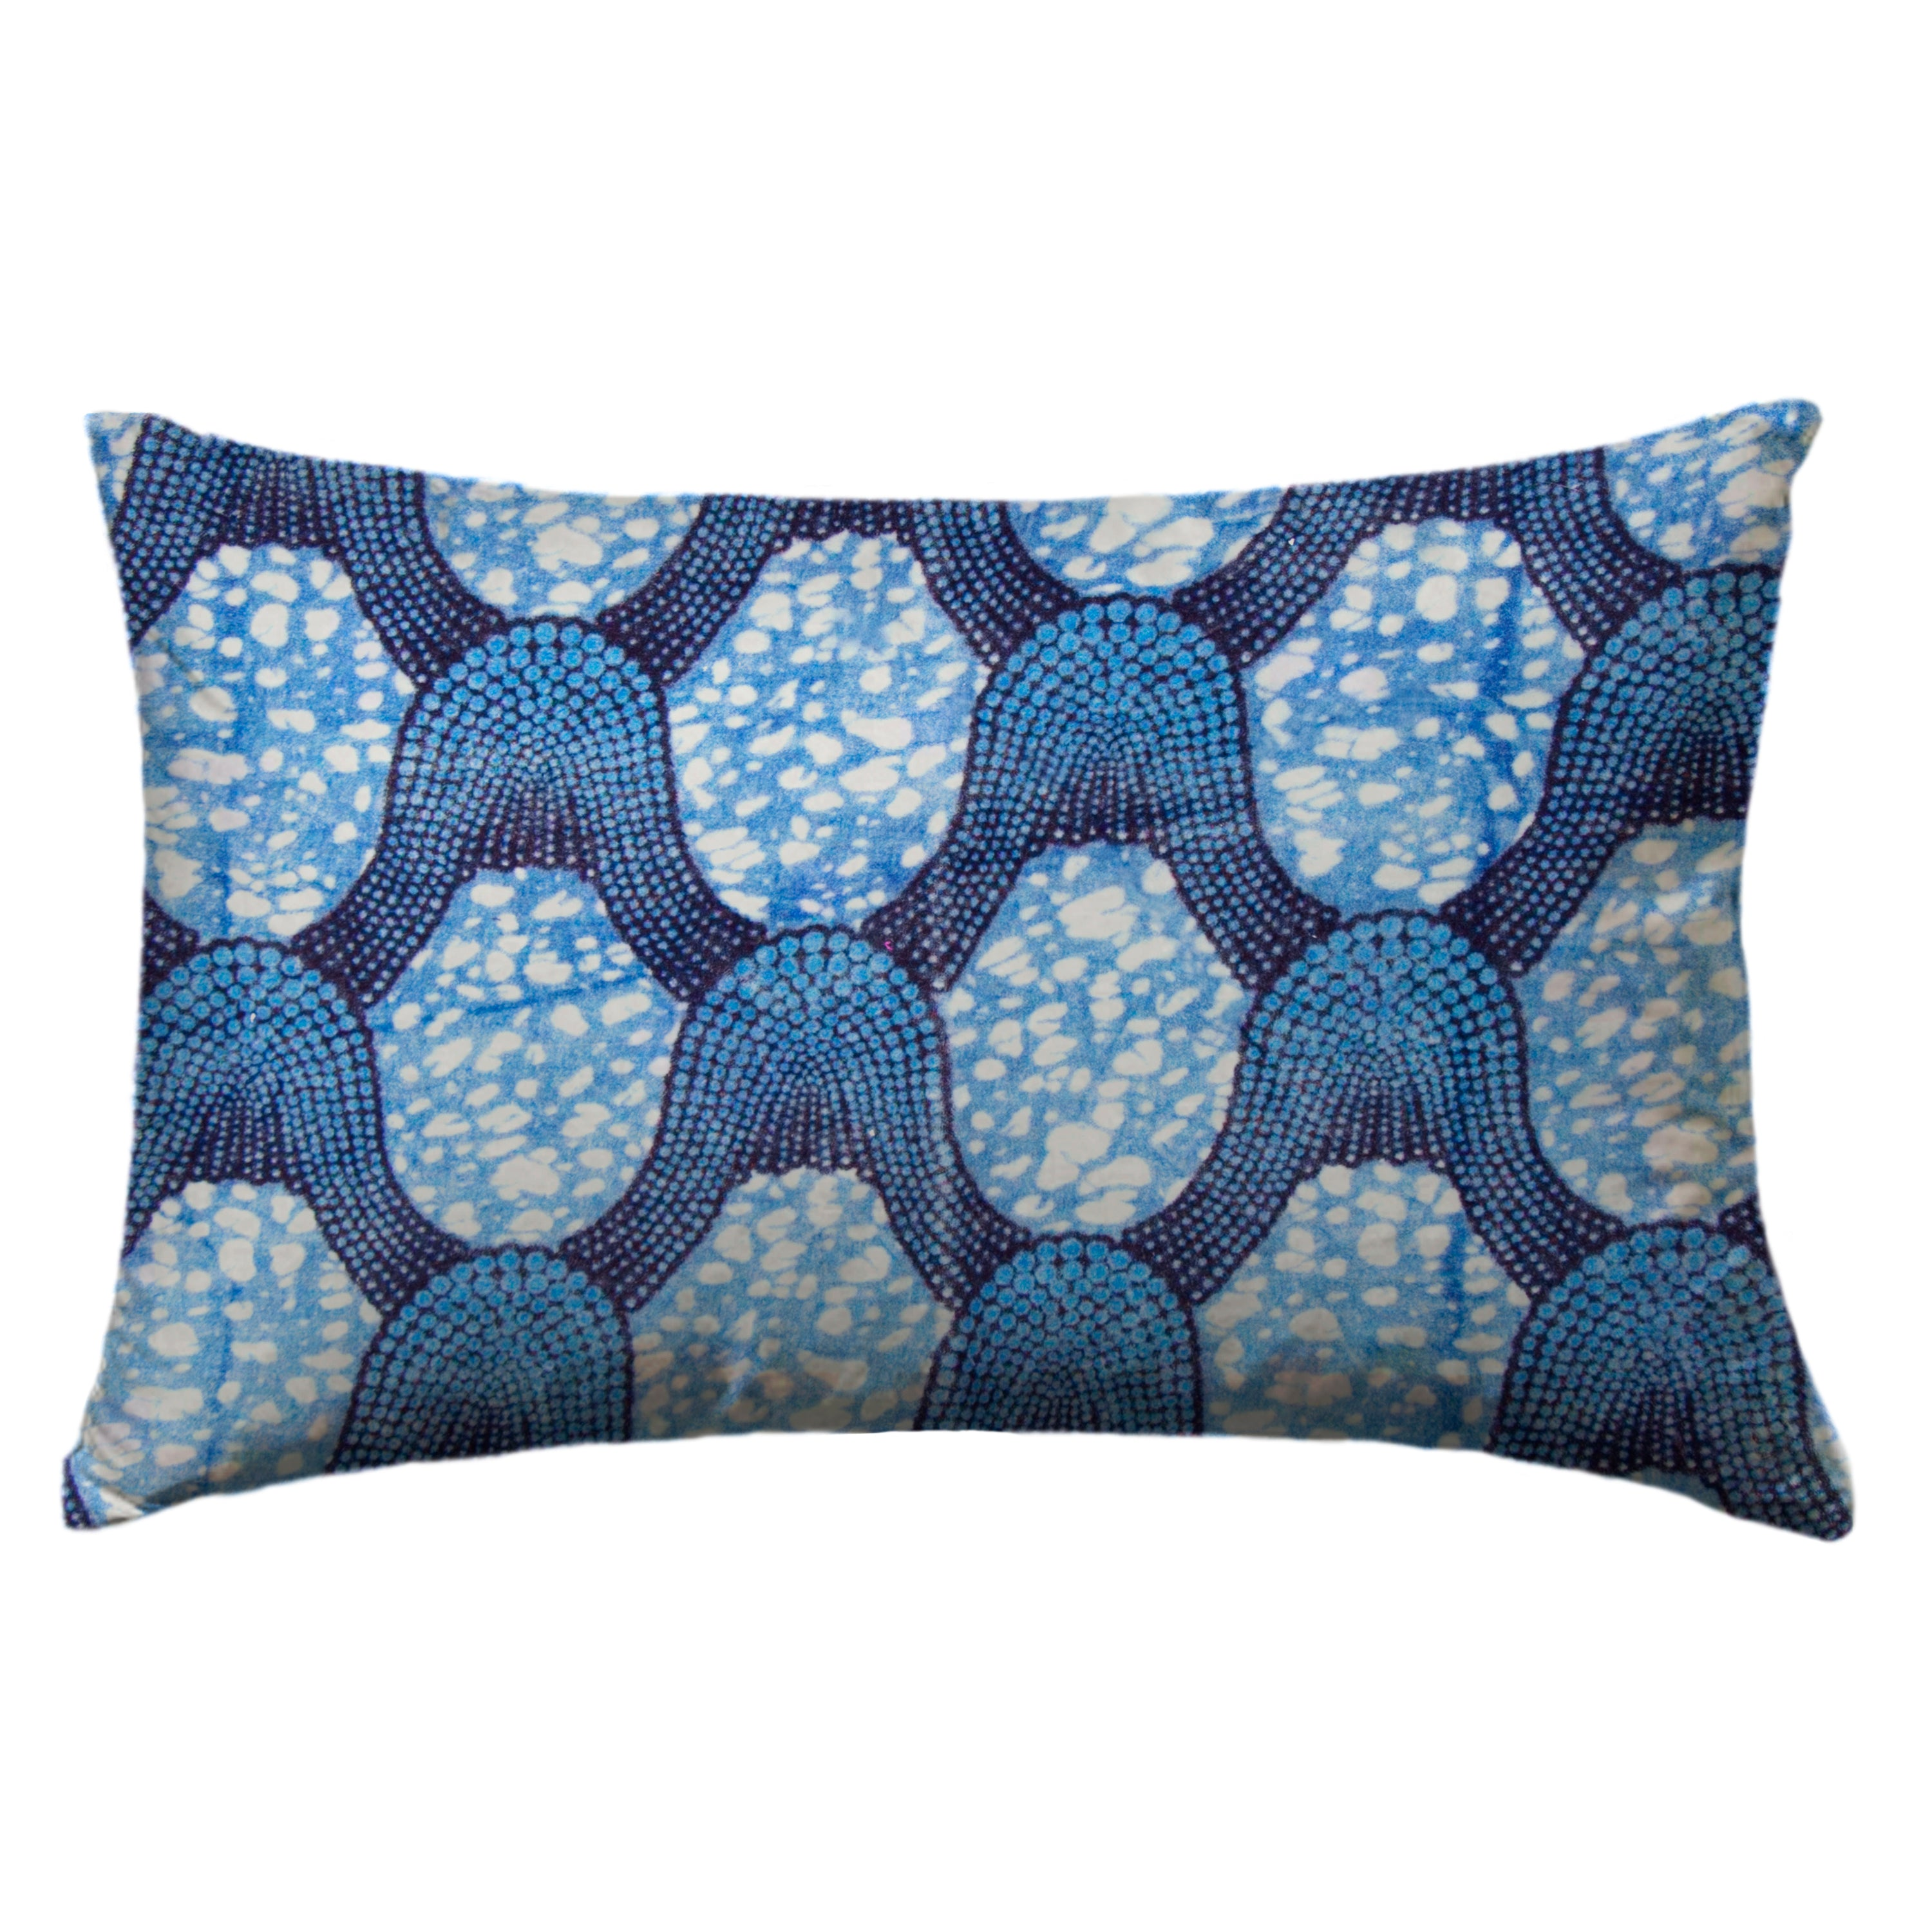 Silk Handwoven Ikat Pillow